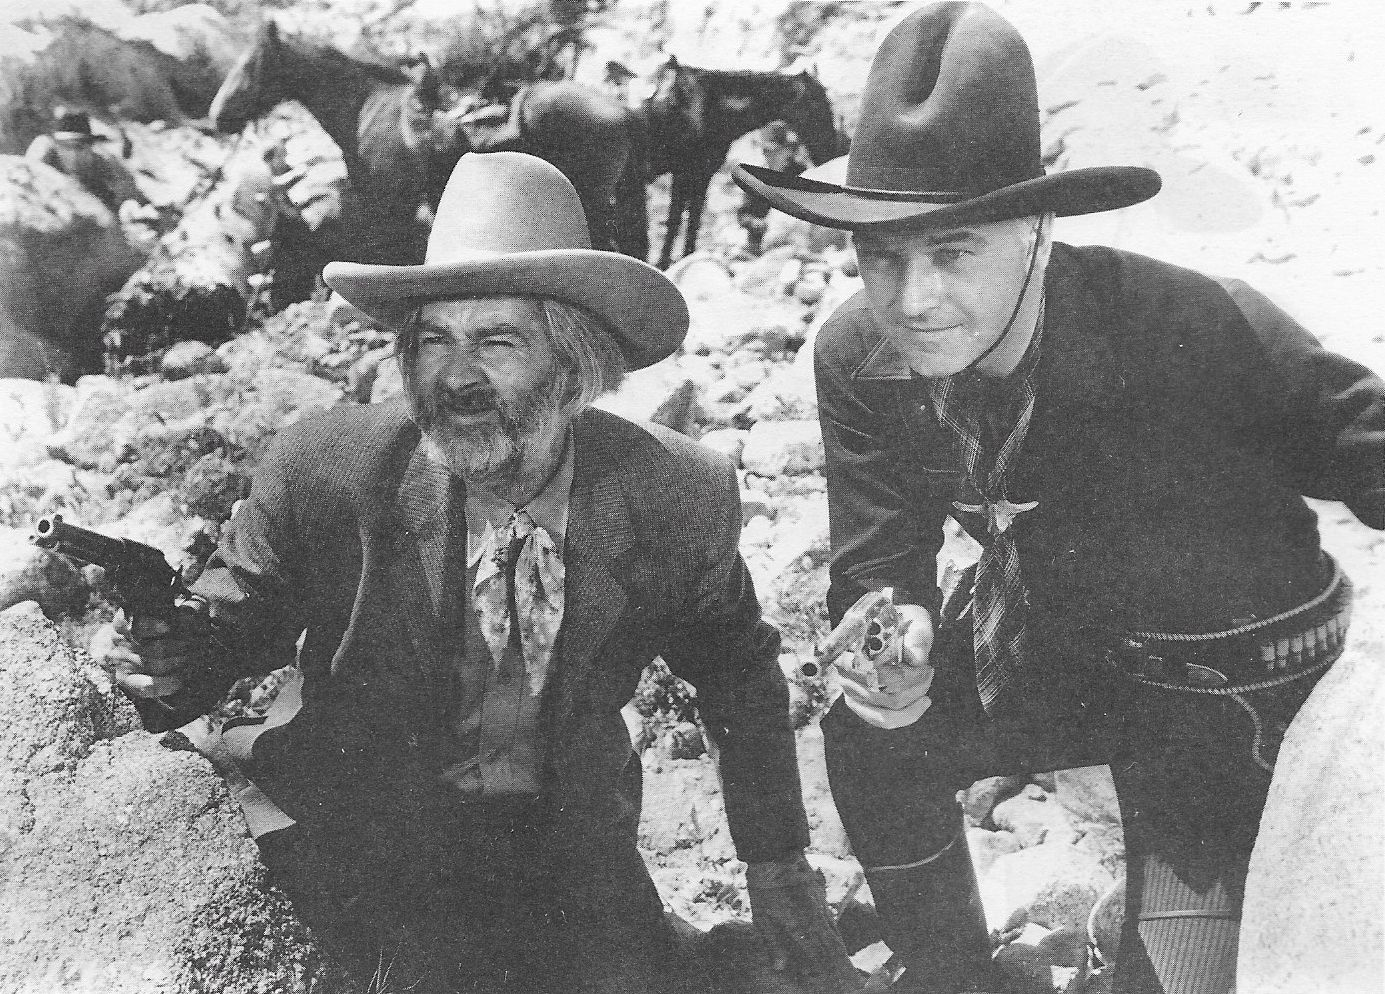 William Boyd and George 'Gabby' Hayes in The Frontiersmen (1938)